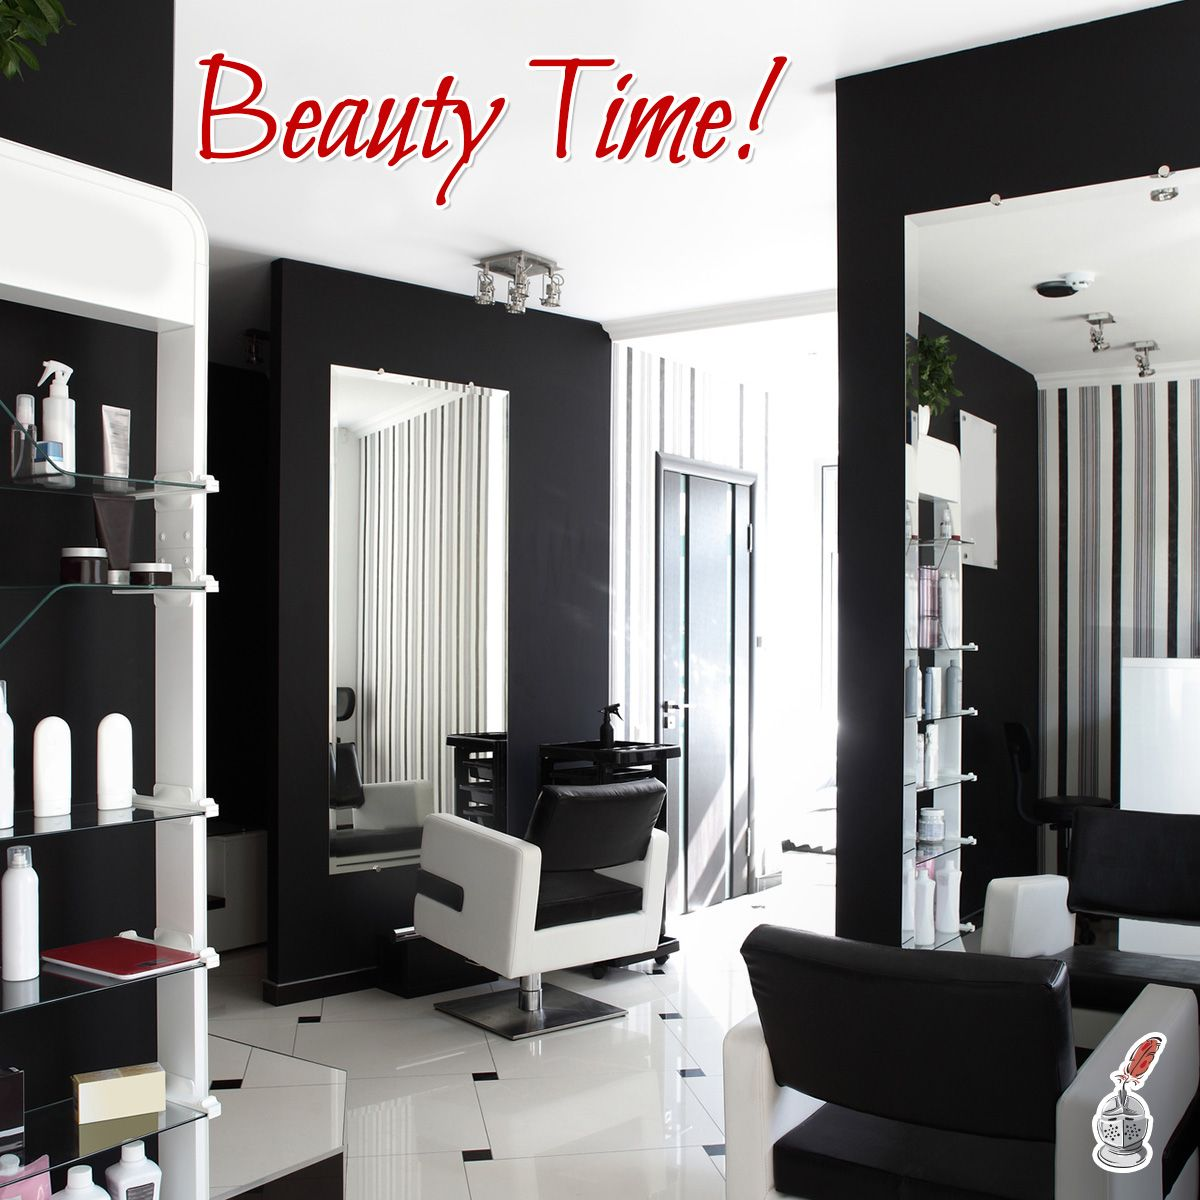 Beauty Time!